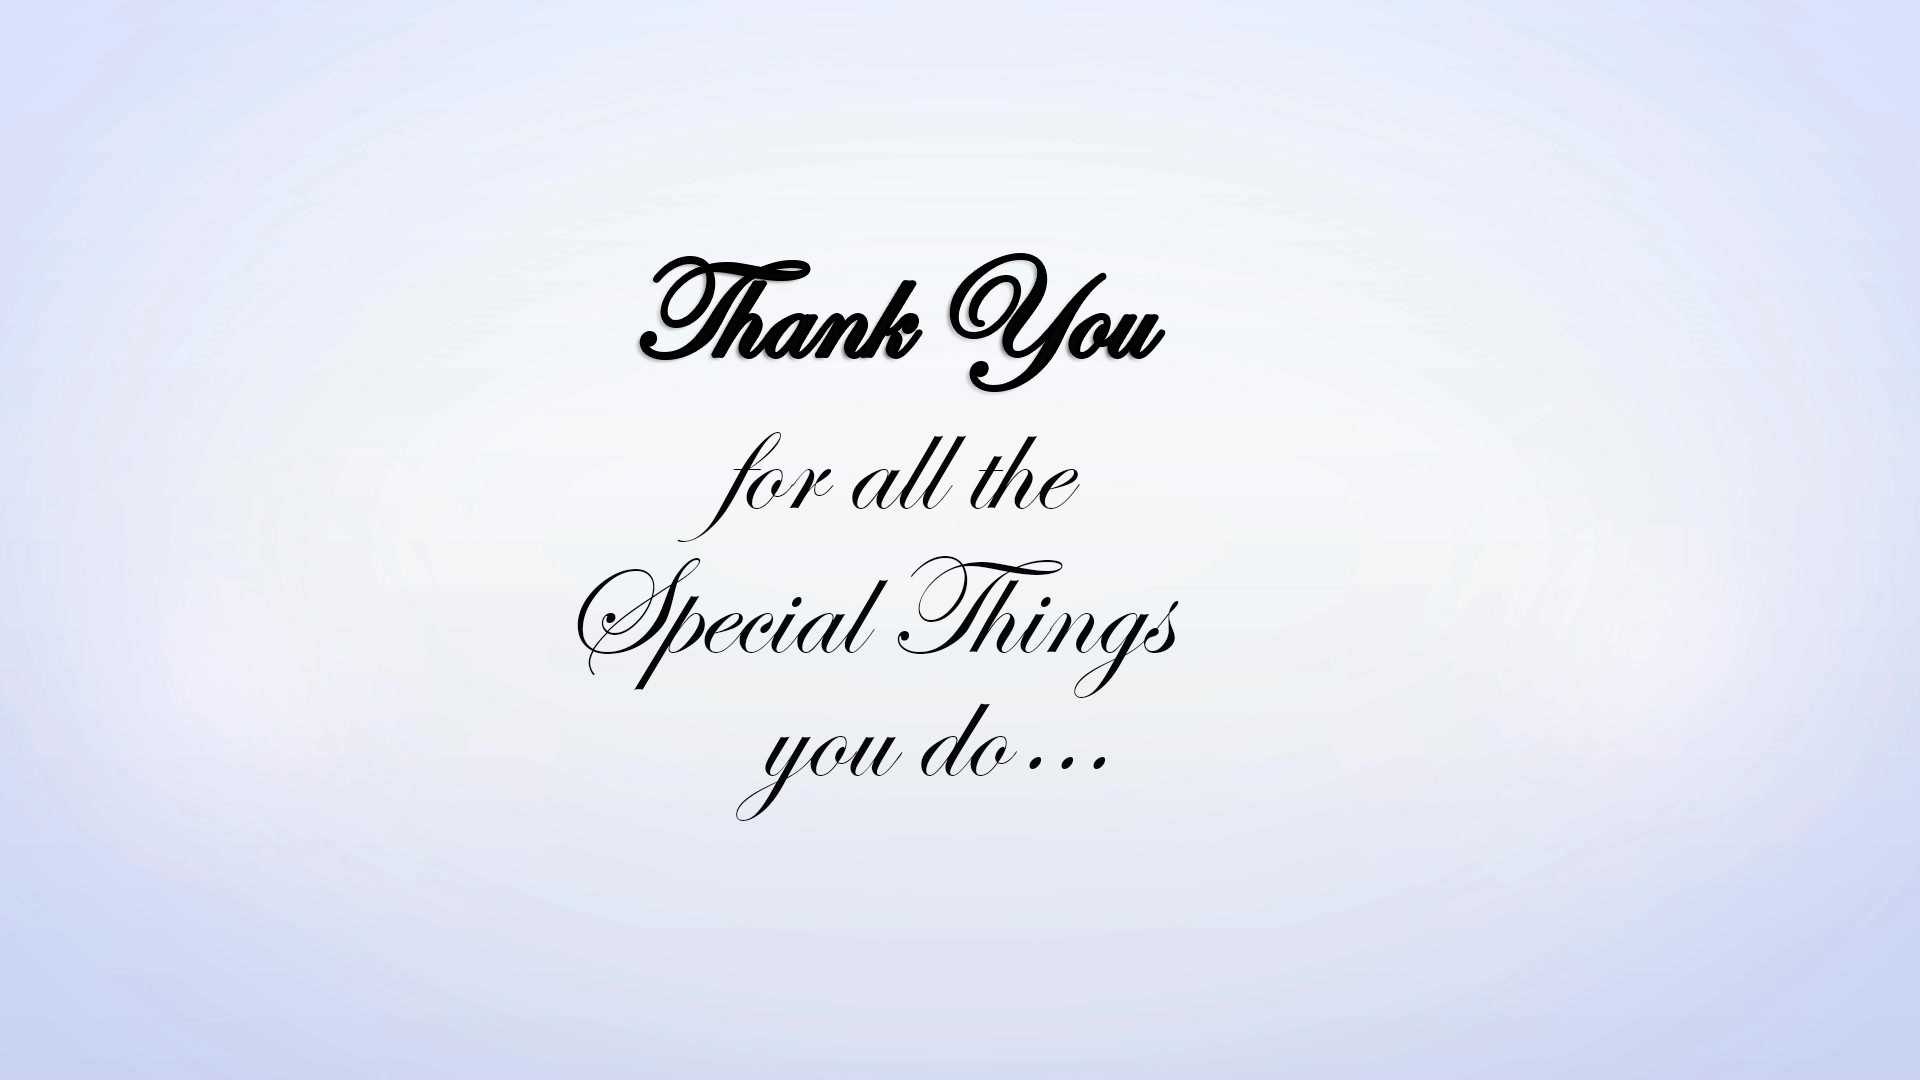 thank-you-for-the-special-things-you-do-images-wallpapers